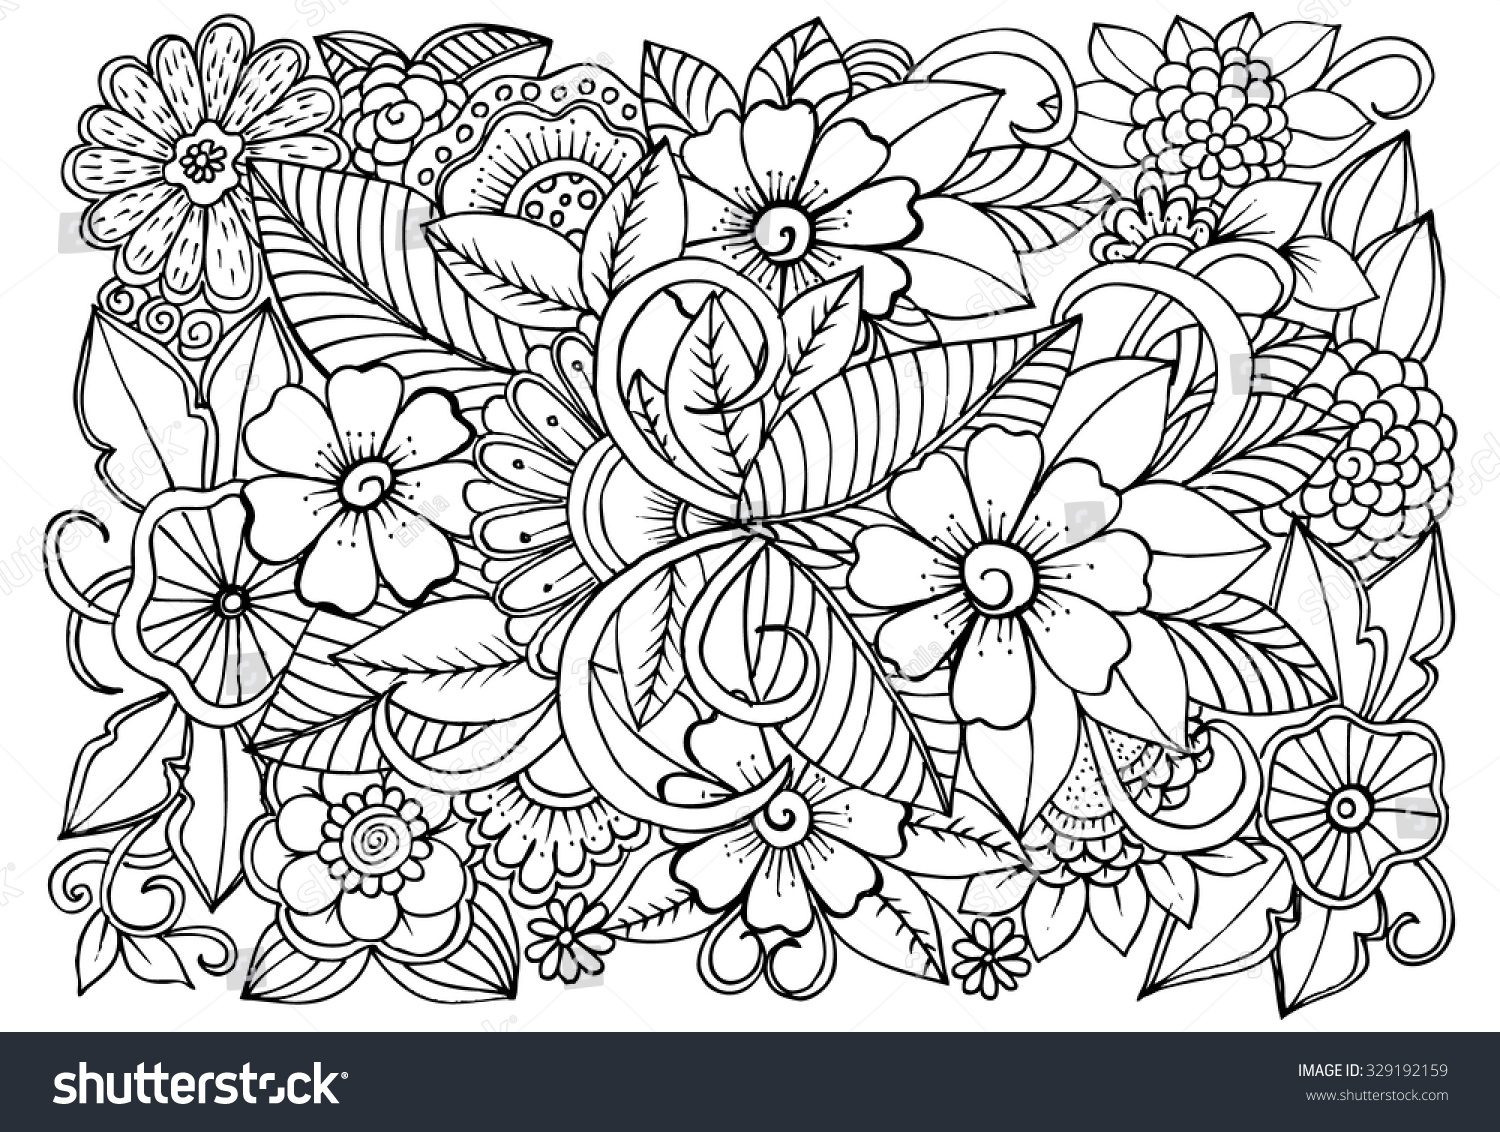 flower coloring pattern - photo #37